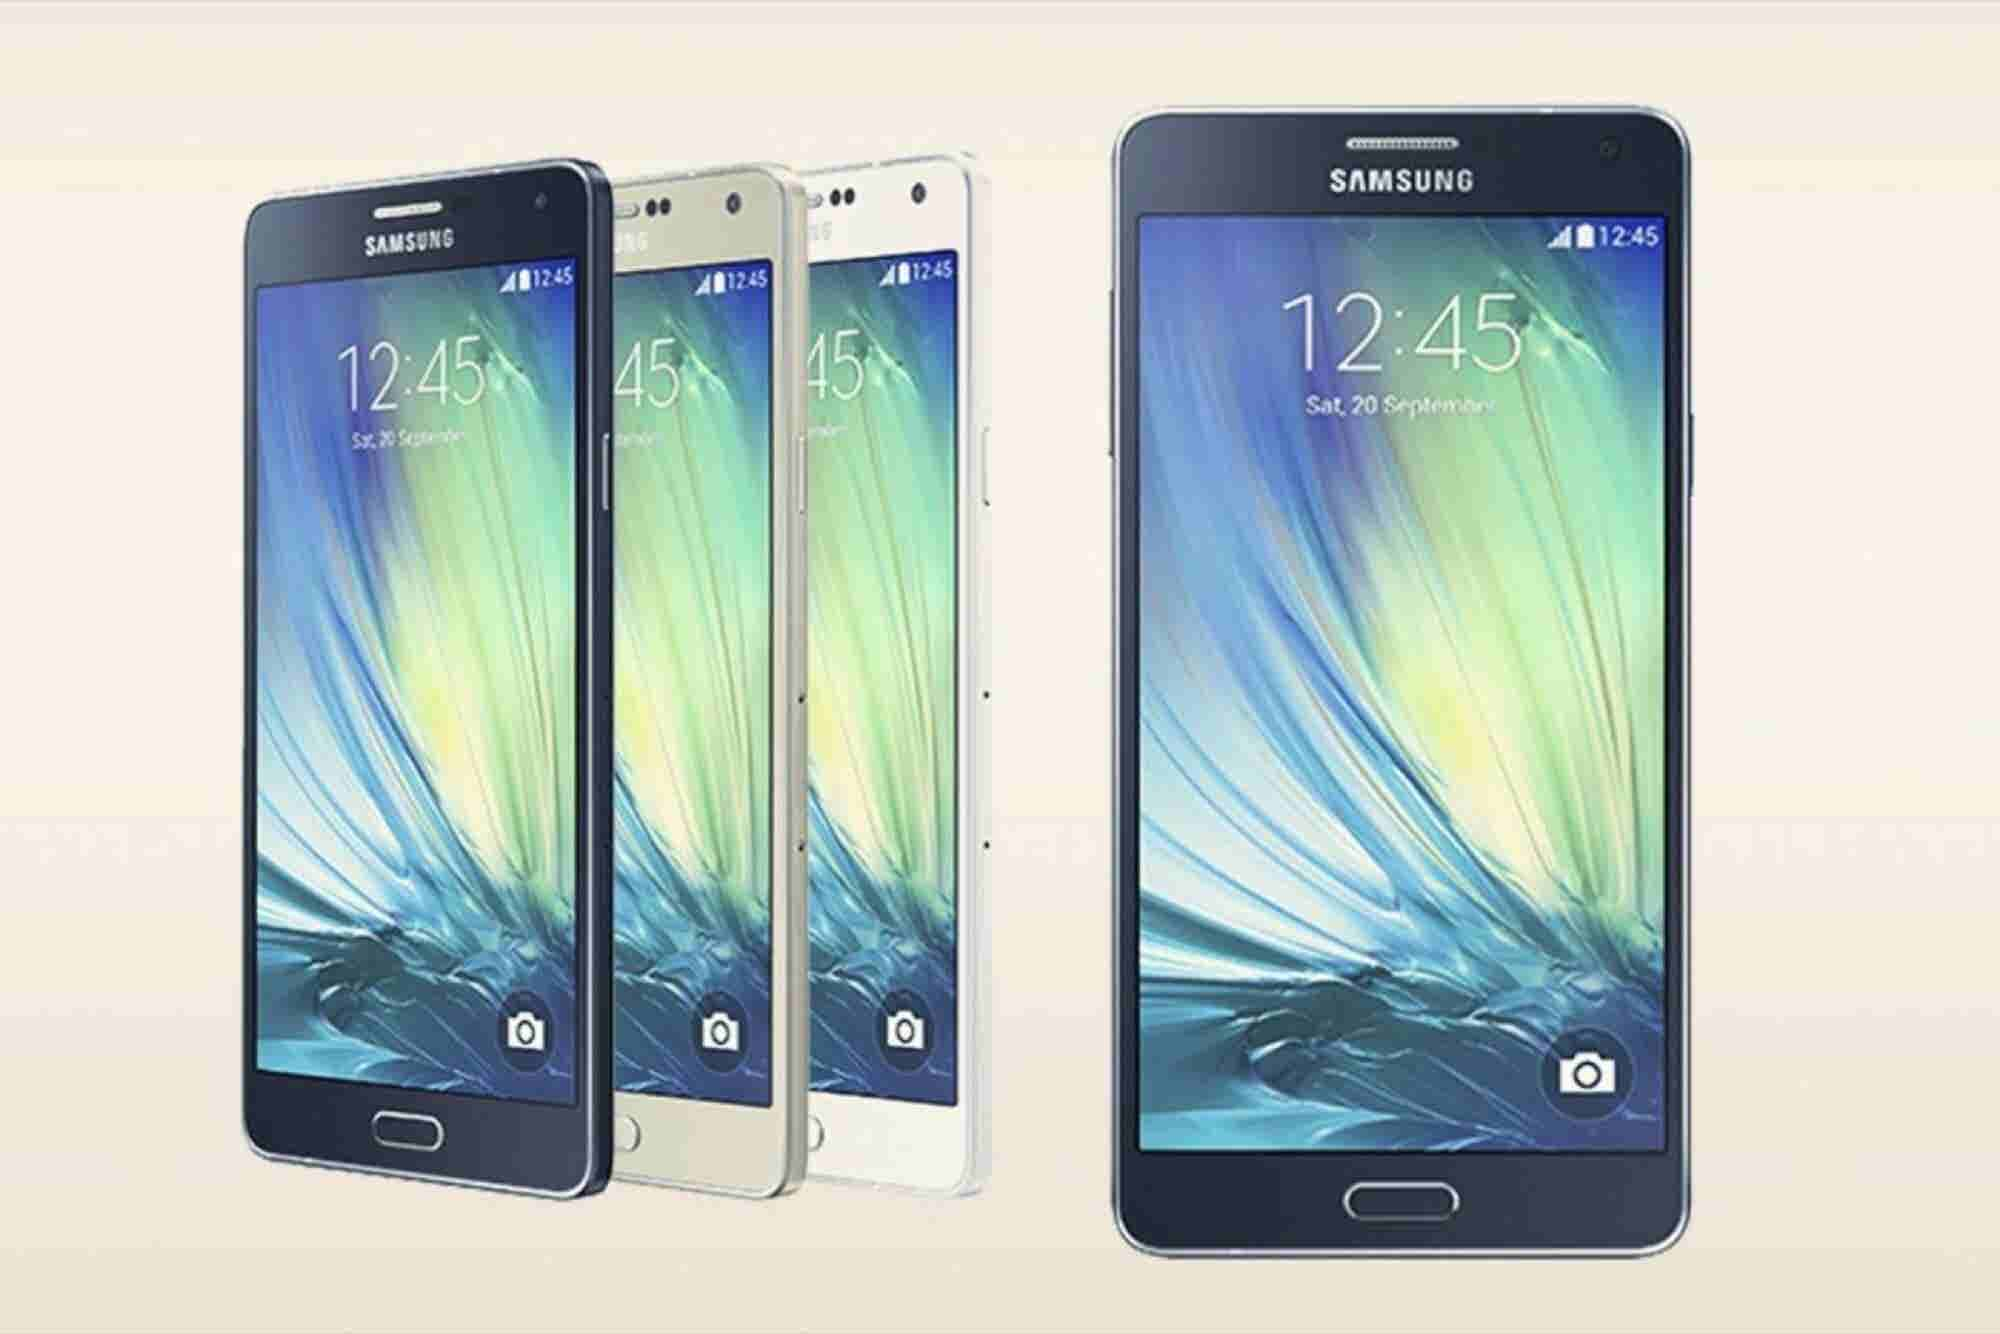 Samsung Just Announced a New Metal Galaxy Phone That's Thinner Than the iPhone 6